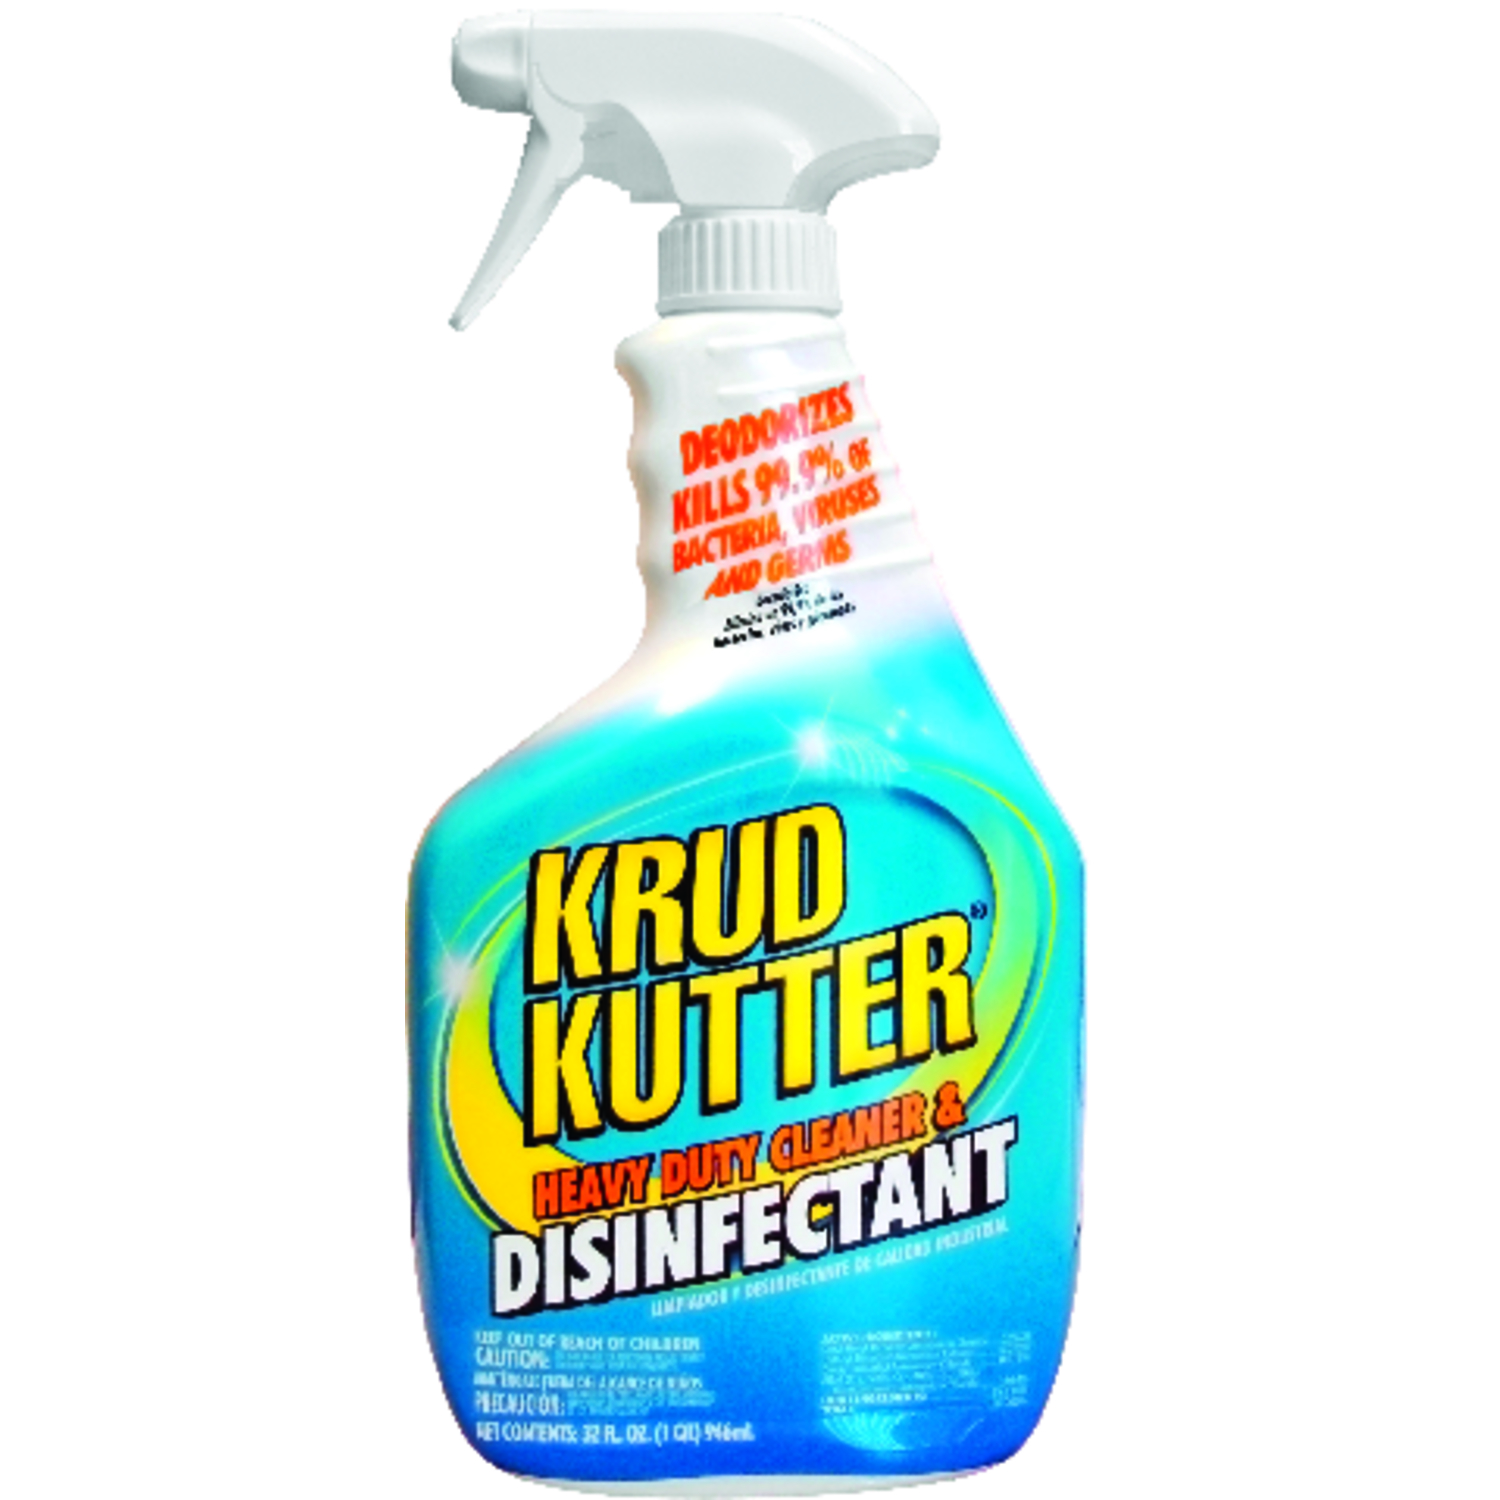 Krud Kutter  Heavy Duty Cleaner & Disinfectant  No Scent Cleaner and Disinfectant  32 oz. Liquid